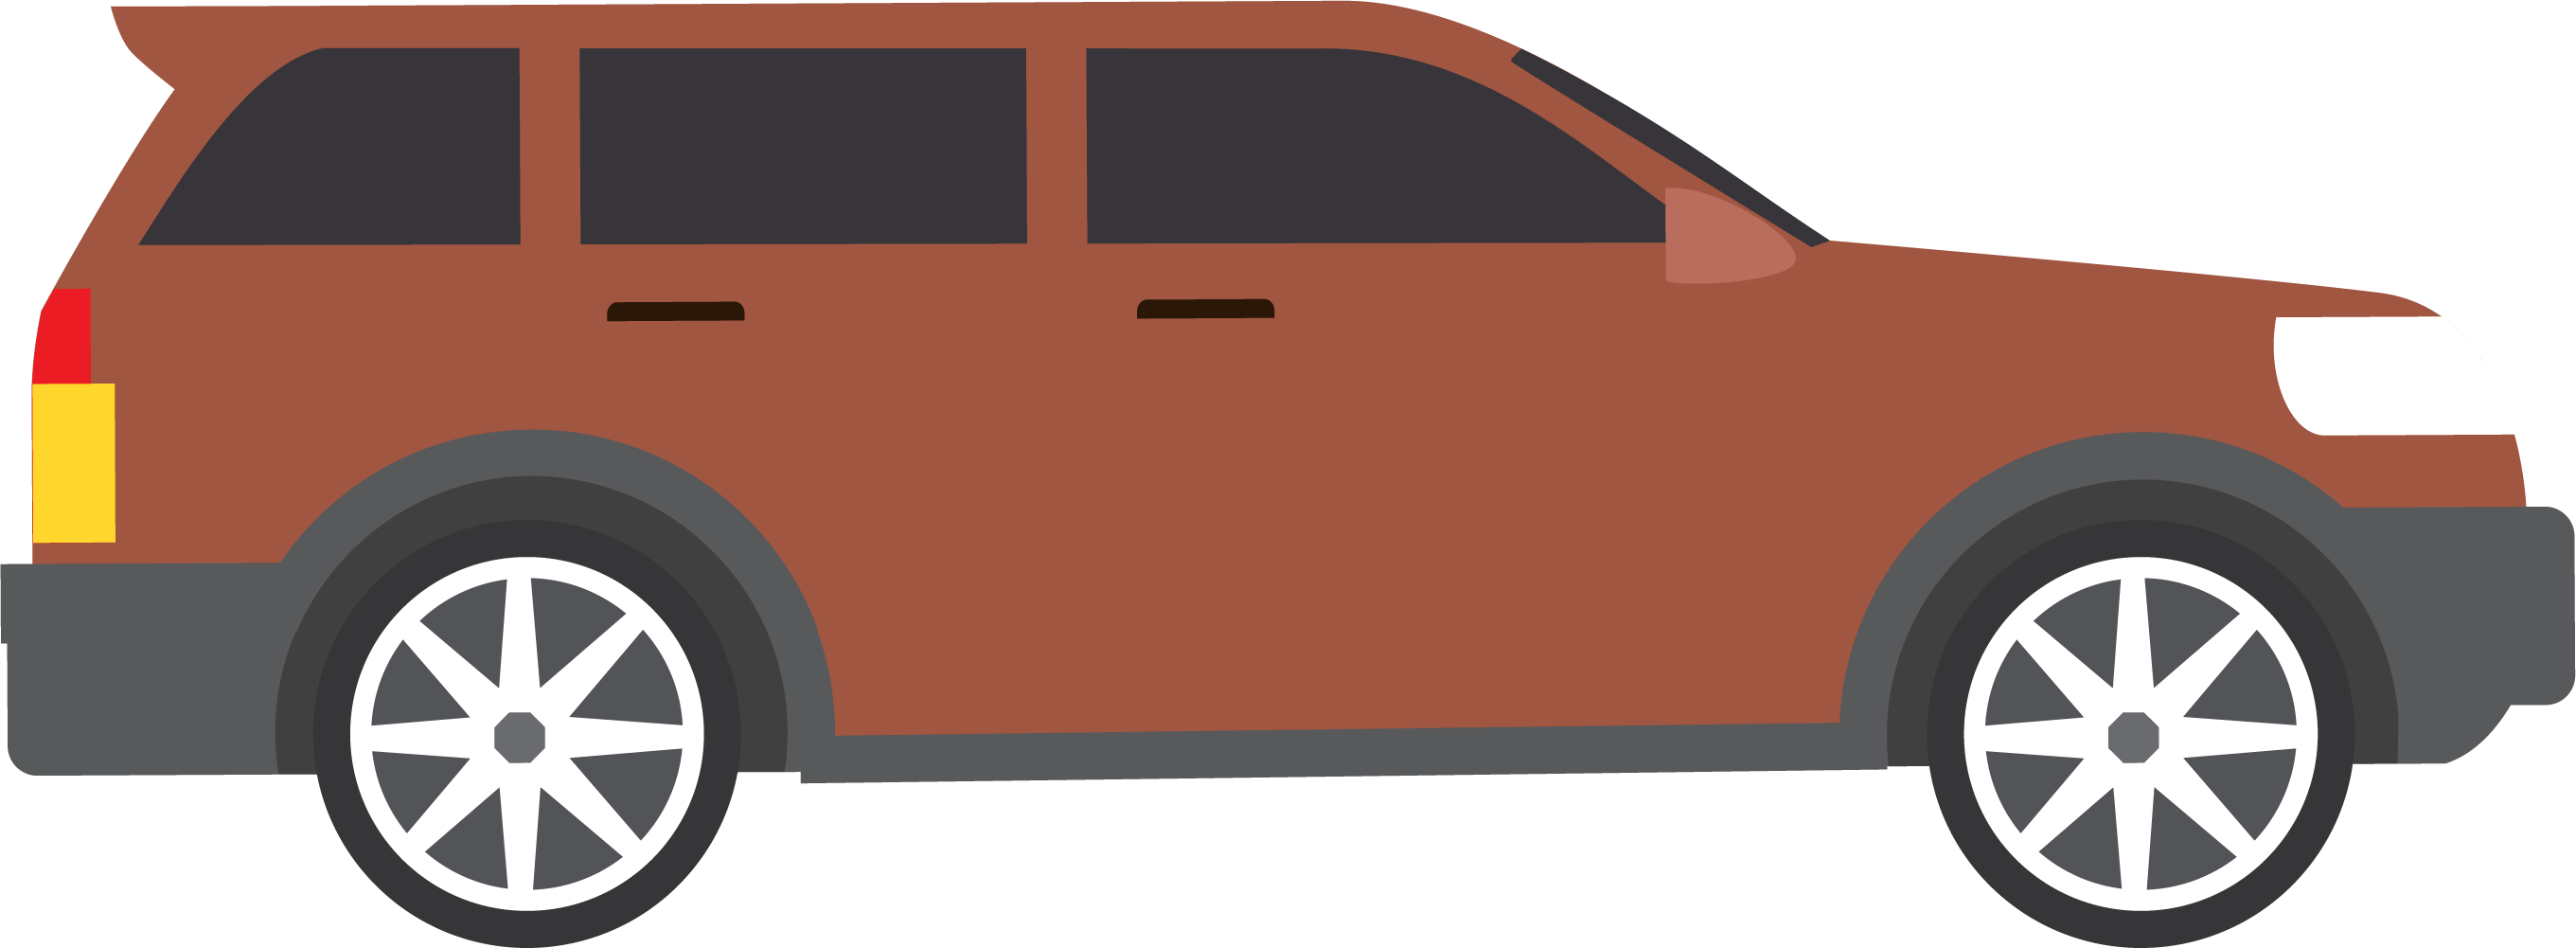 Set-of-truck-and-other-cars 2.png